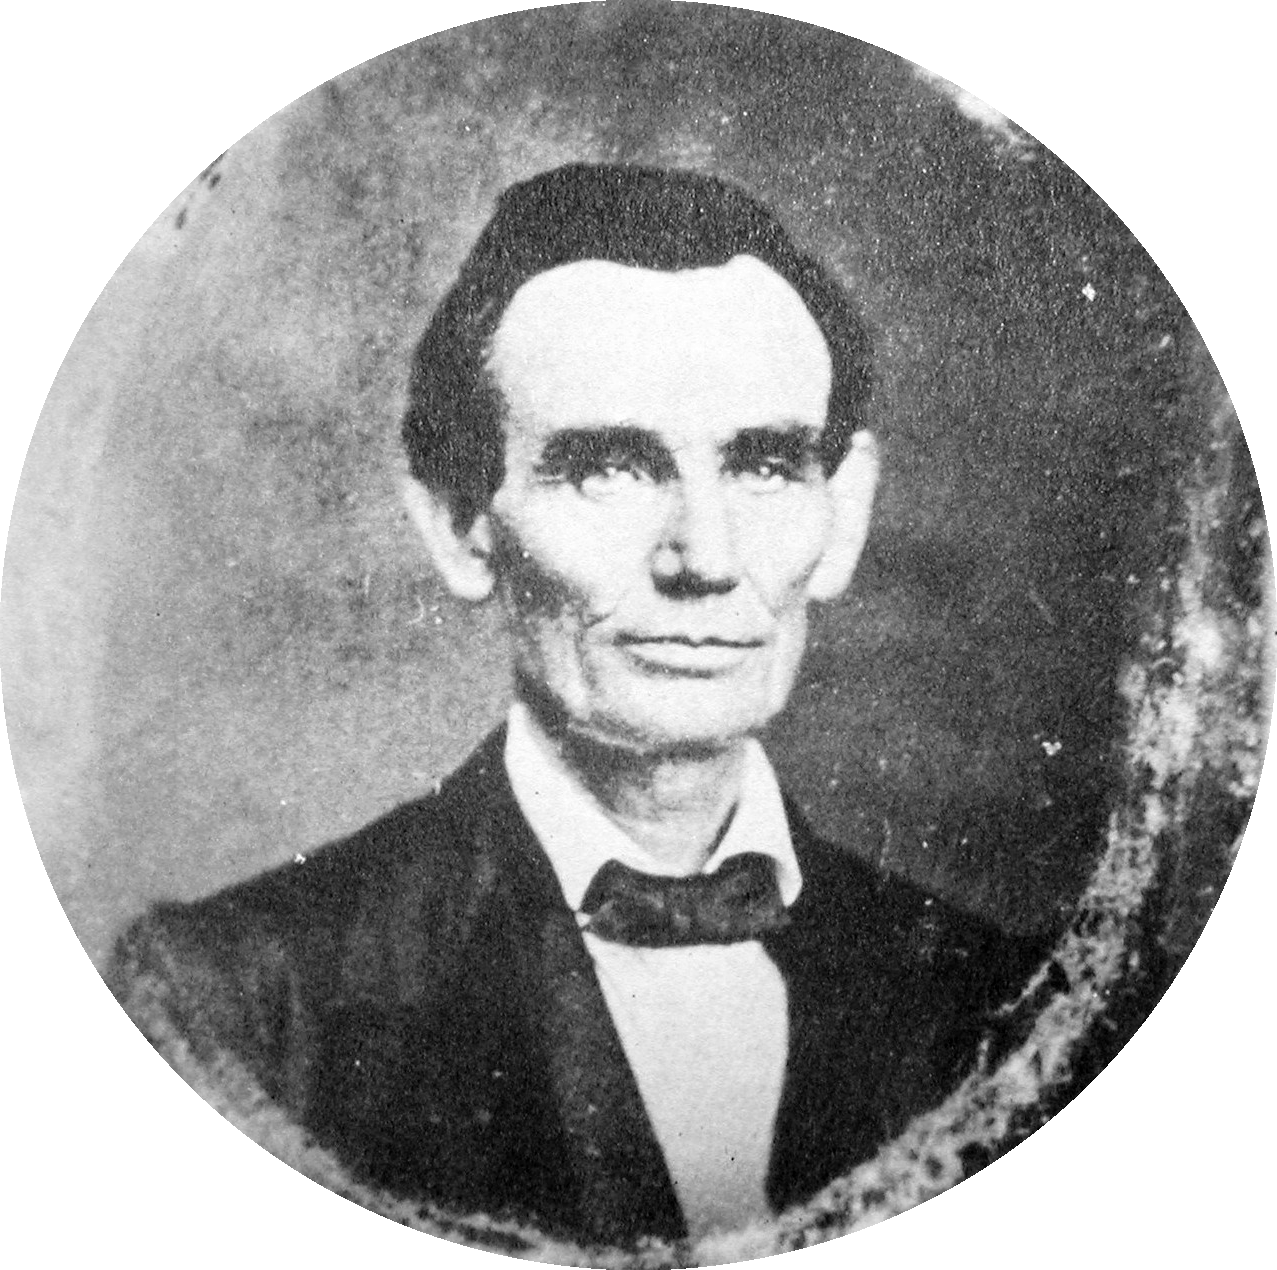 http://smakchwil.ucoz.pl/_ld/5/515_Abraham_Lincoln.png